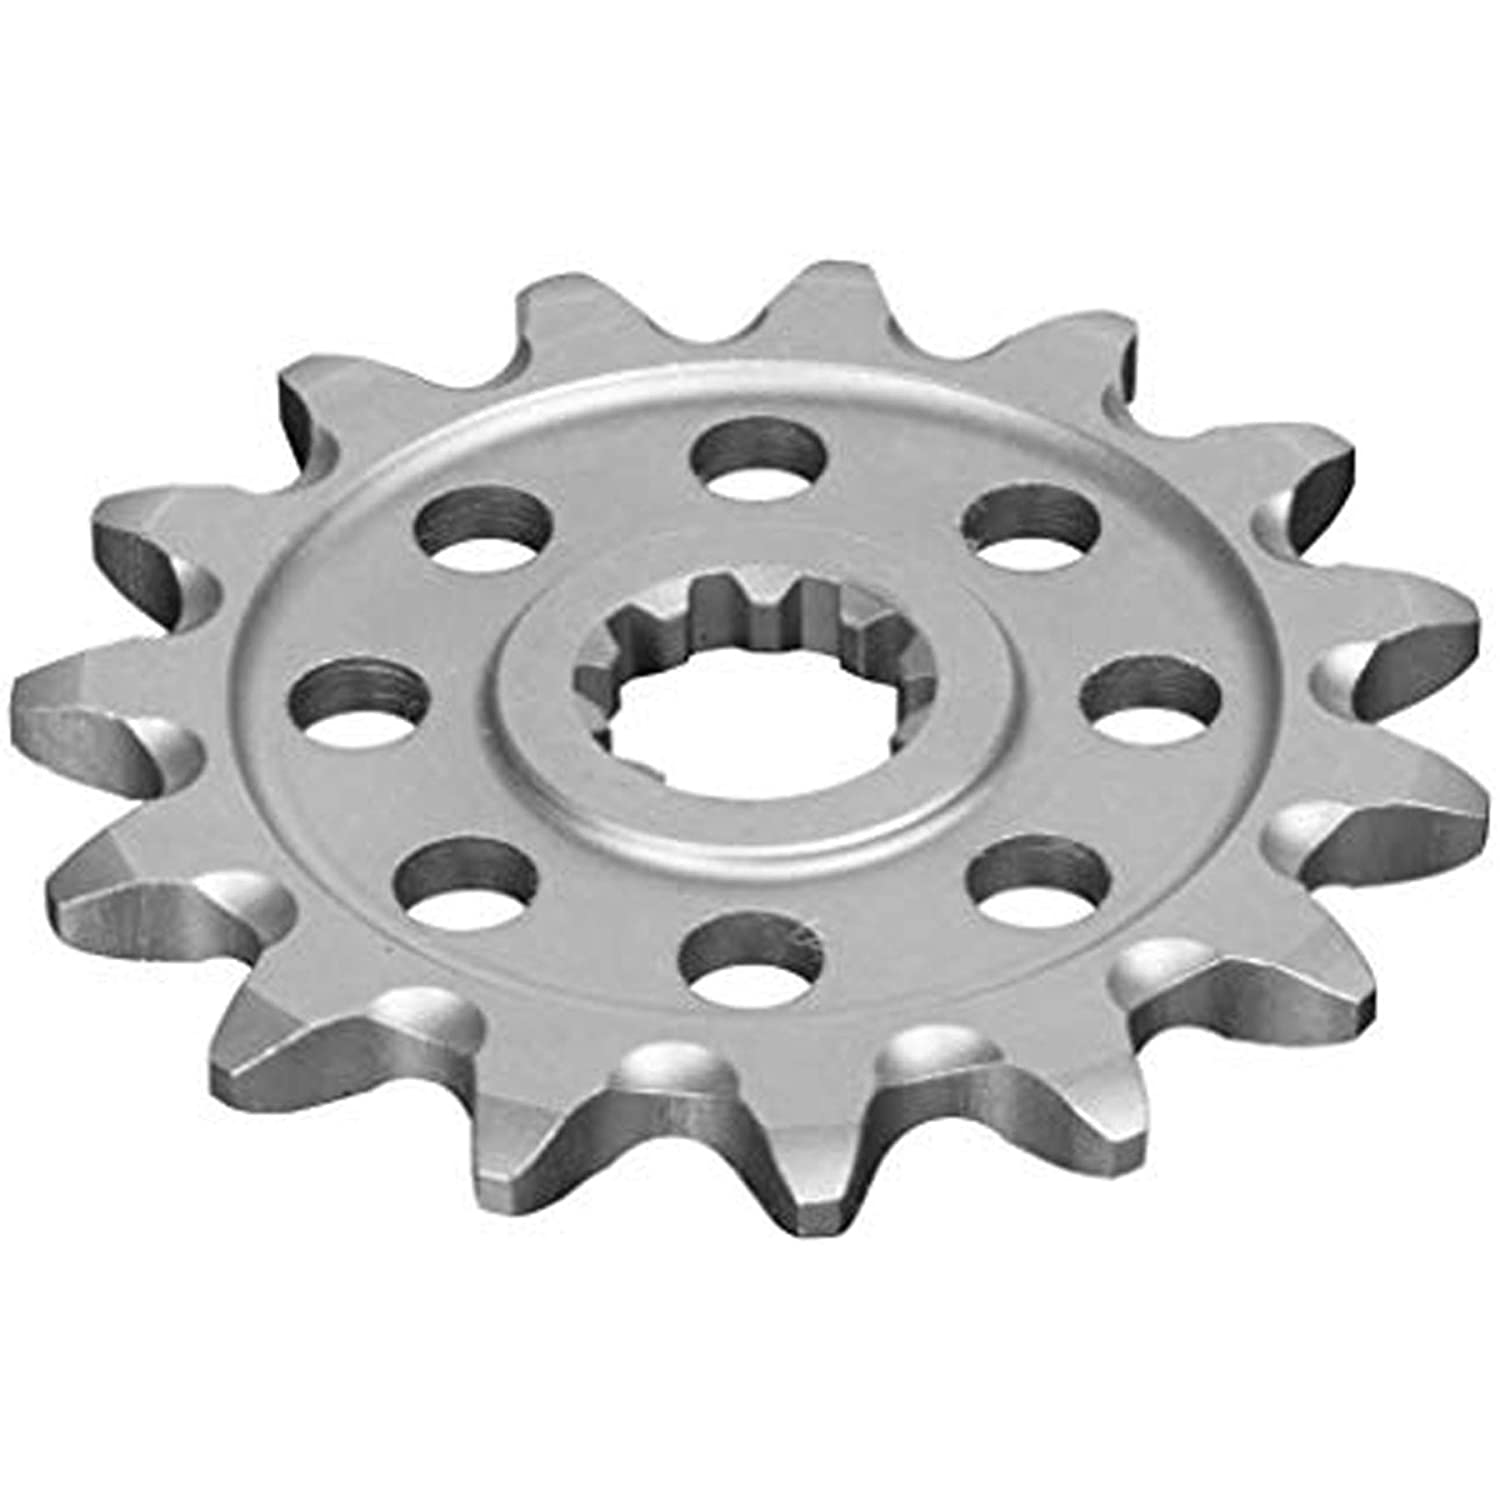 16T For 2014 Honda CRF150R Expert Offroad Motorcycles Grooved Ultralight Front Sprocket